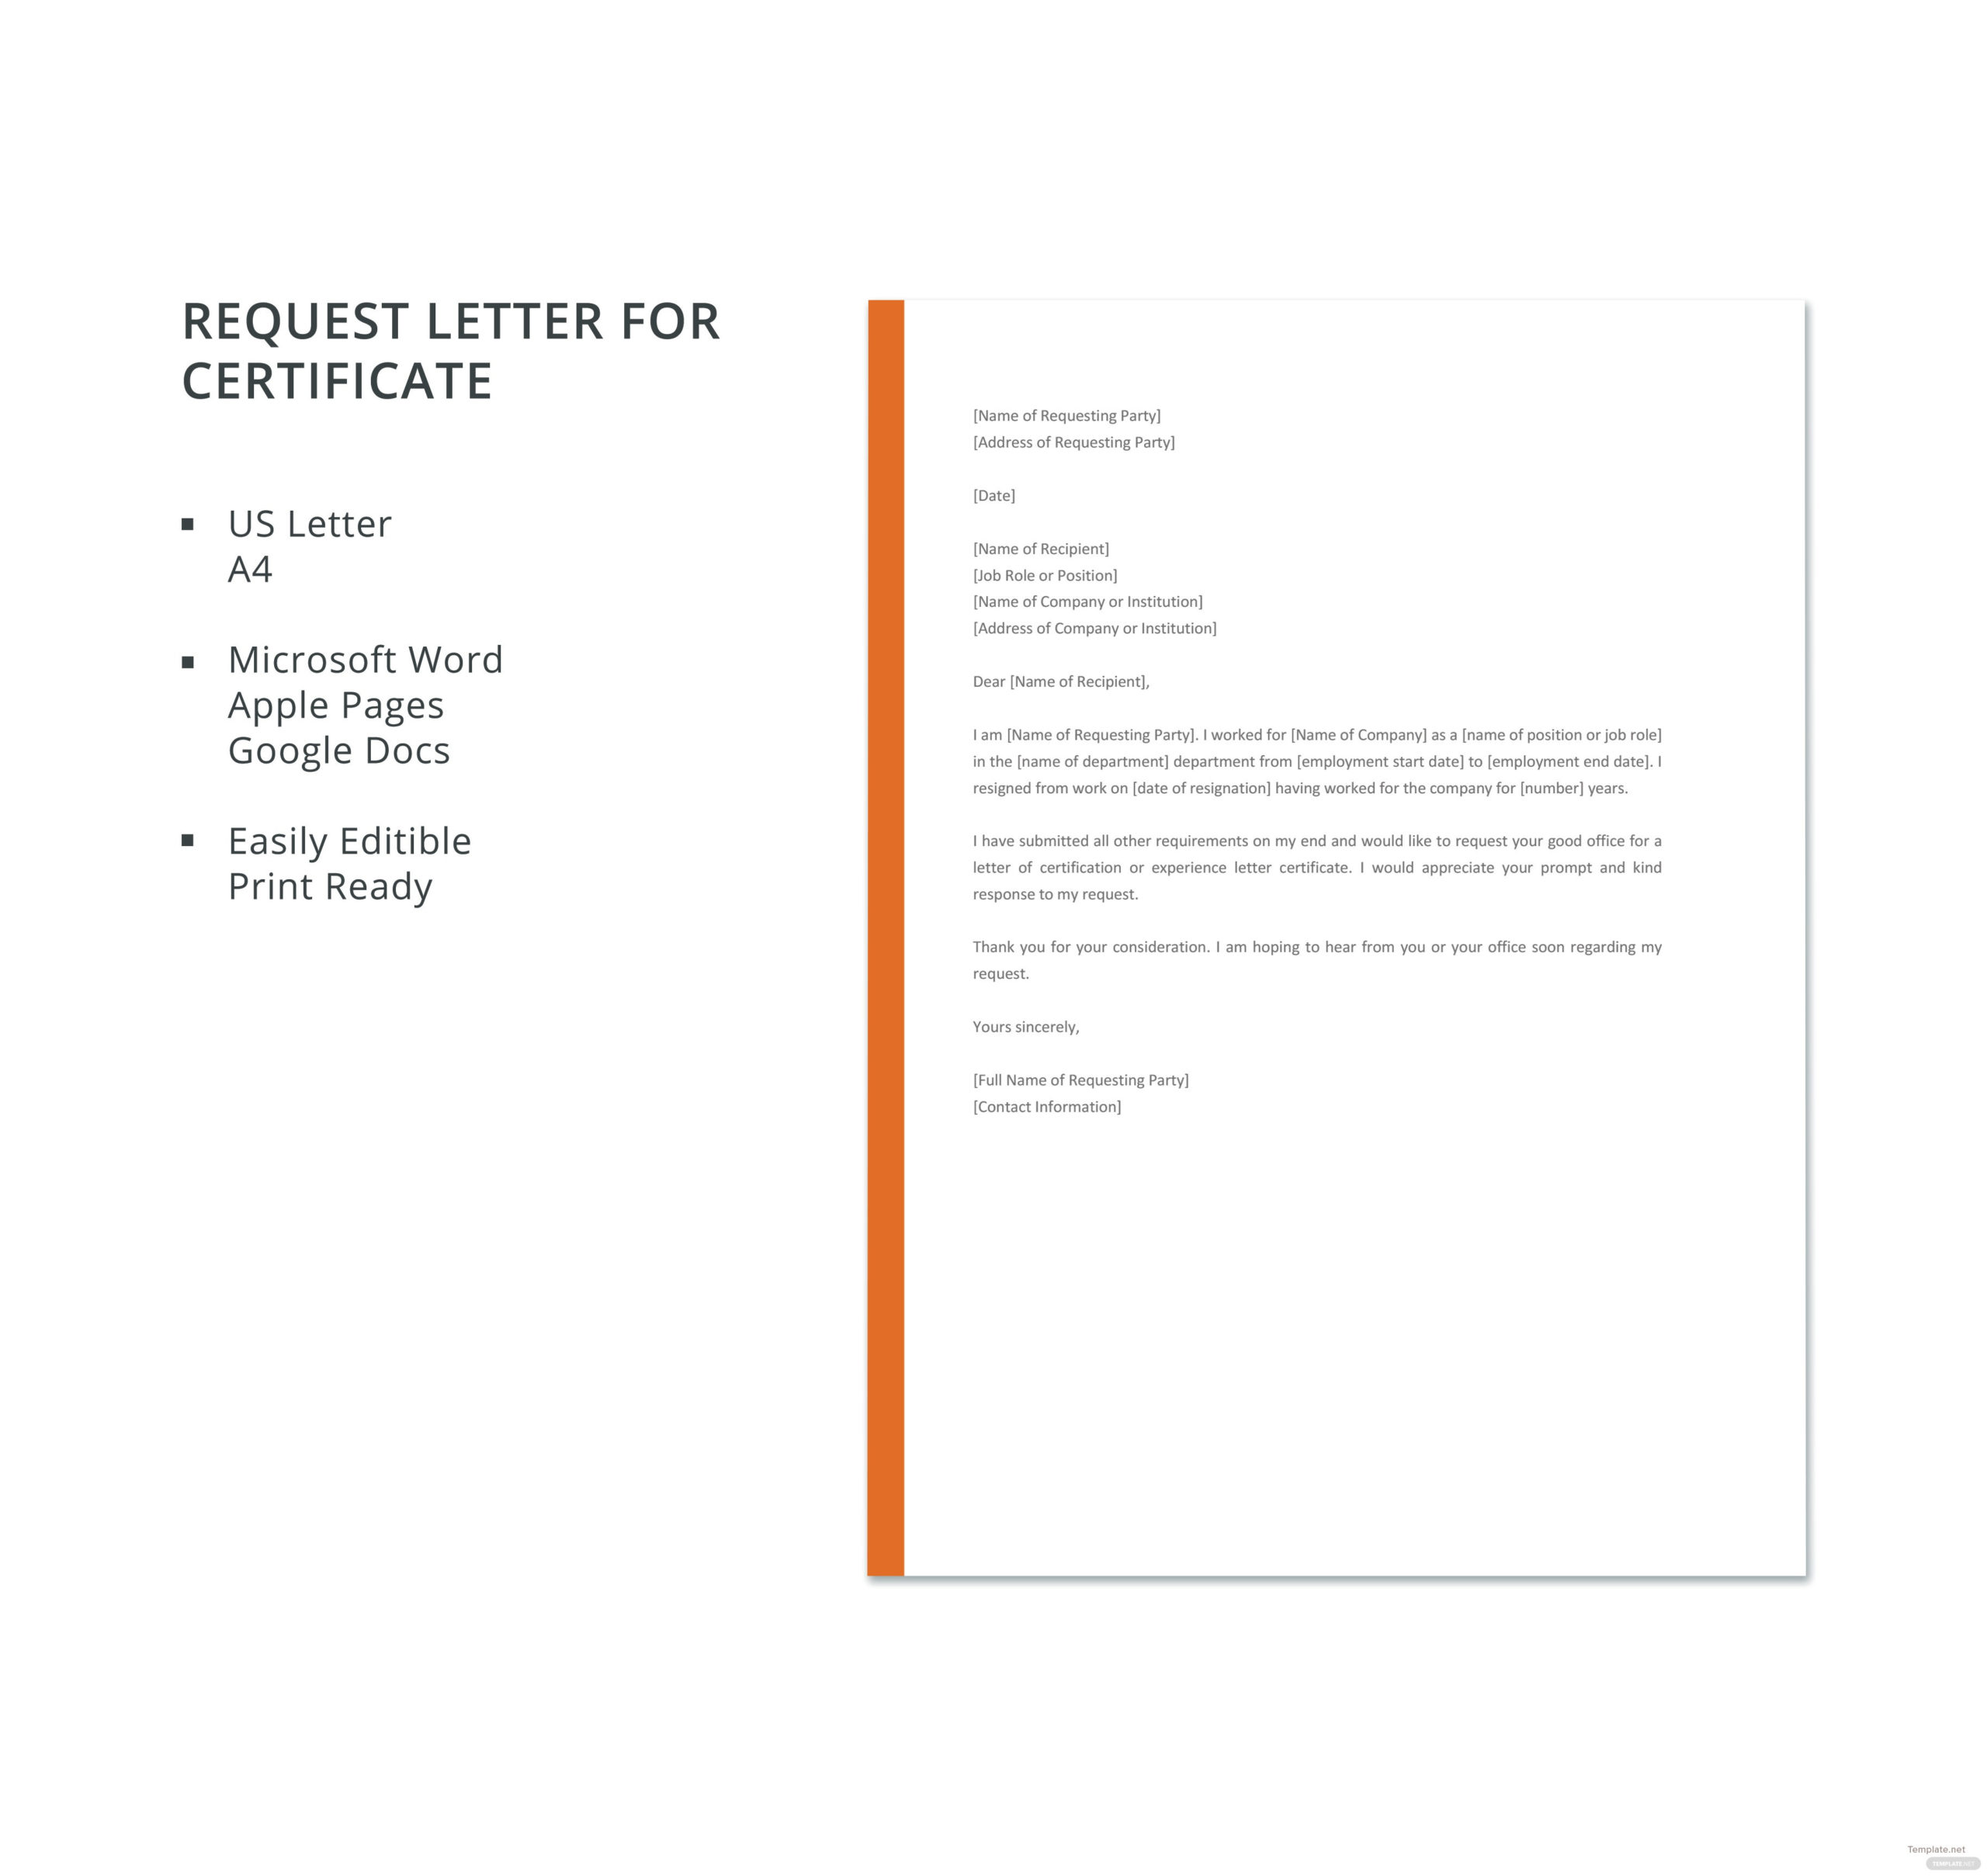 Free Request Letter For Certificate Template In Microsoft in Printable Word 2013 Certificate Template